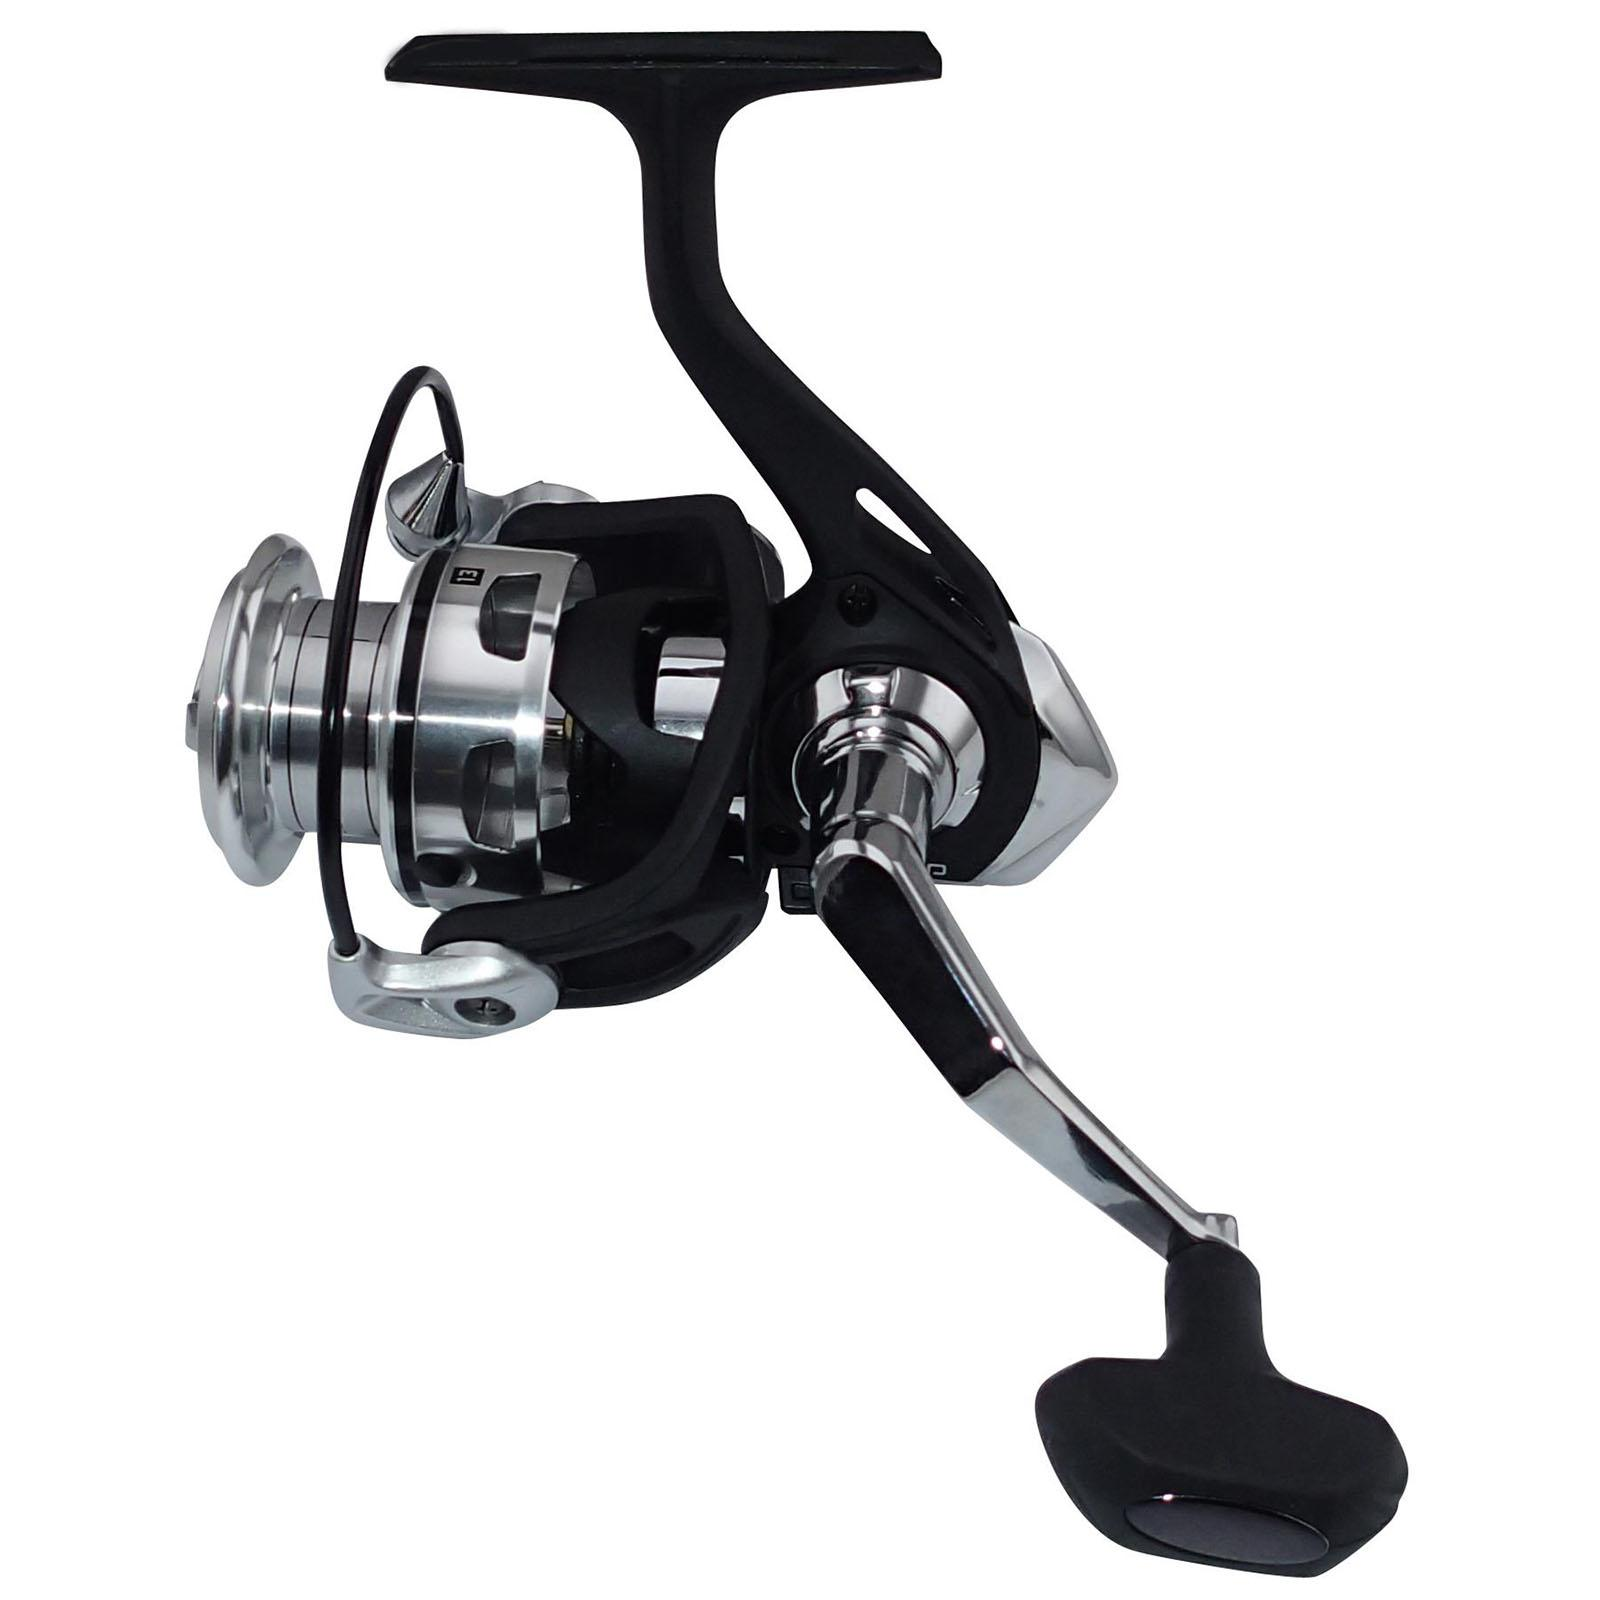 13 Fishing Creed Chrome Spinning Reel Model CRCRM3000